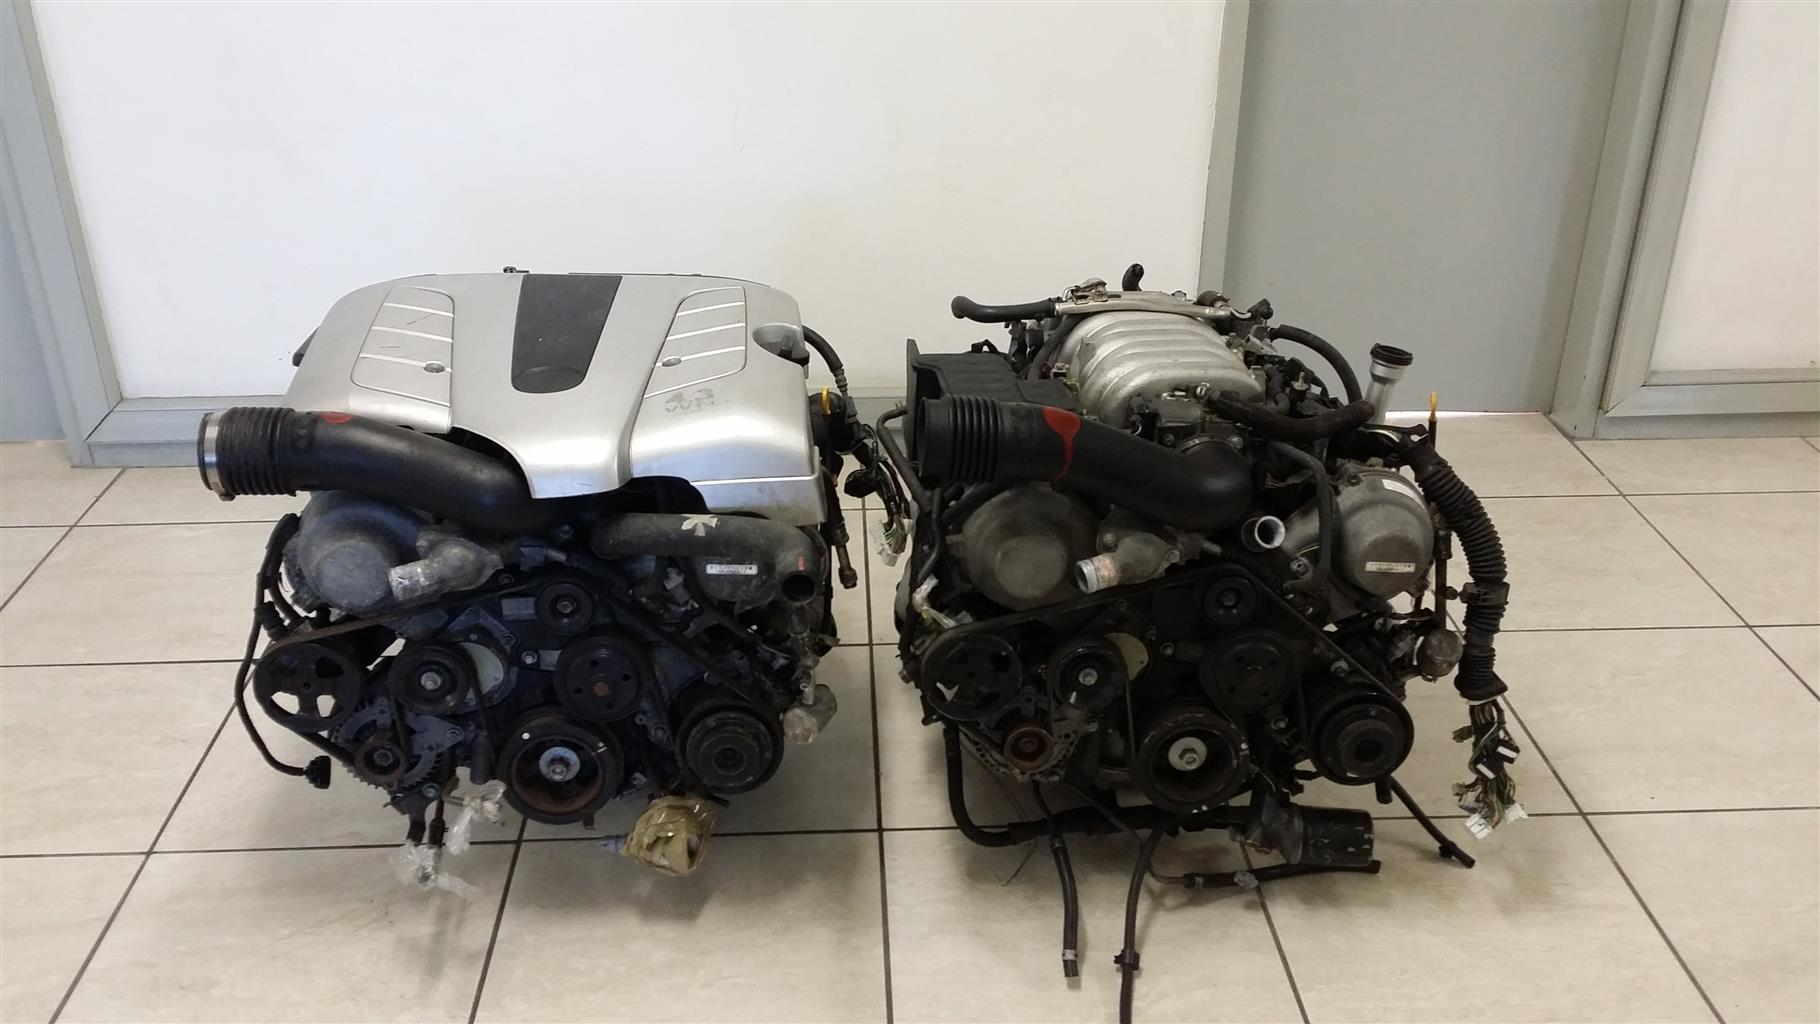 Lexus V8 1UZ and 3UZ VVTi Engines For Sale @ Lextreme | Junk Mail